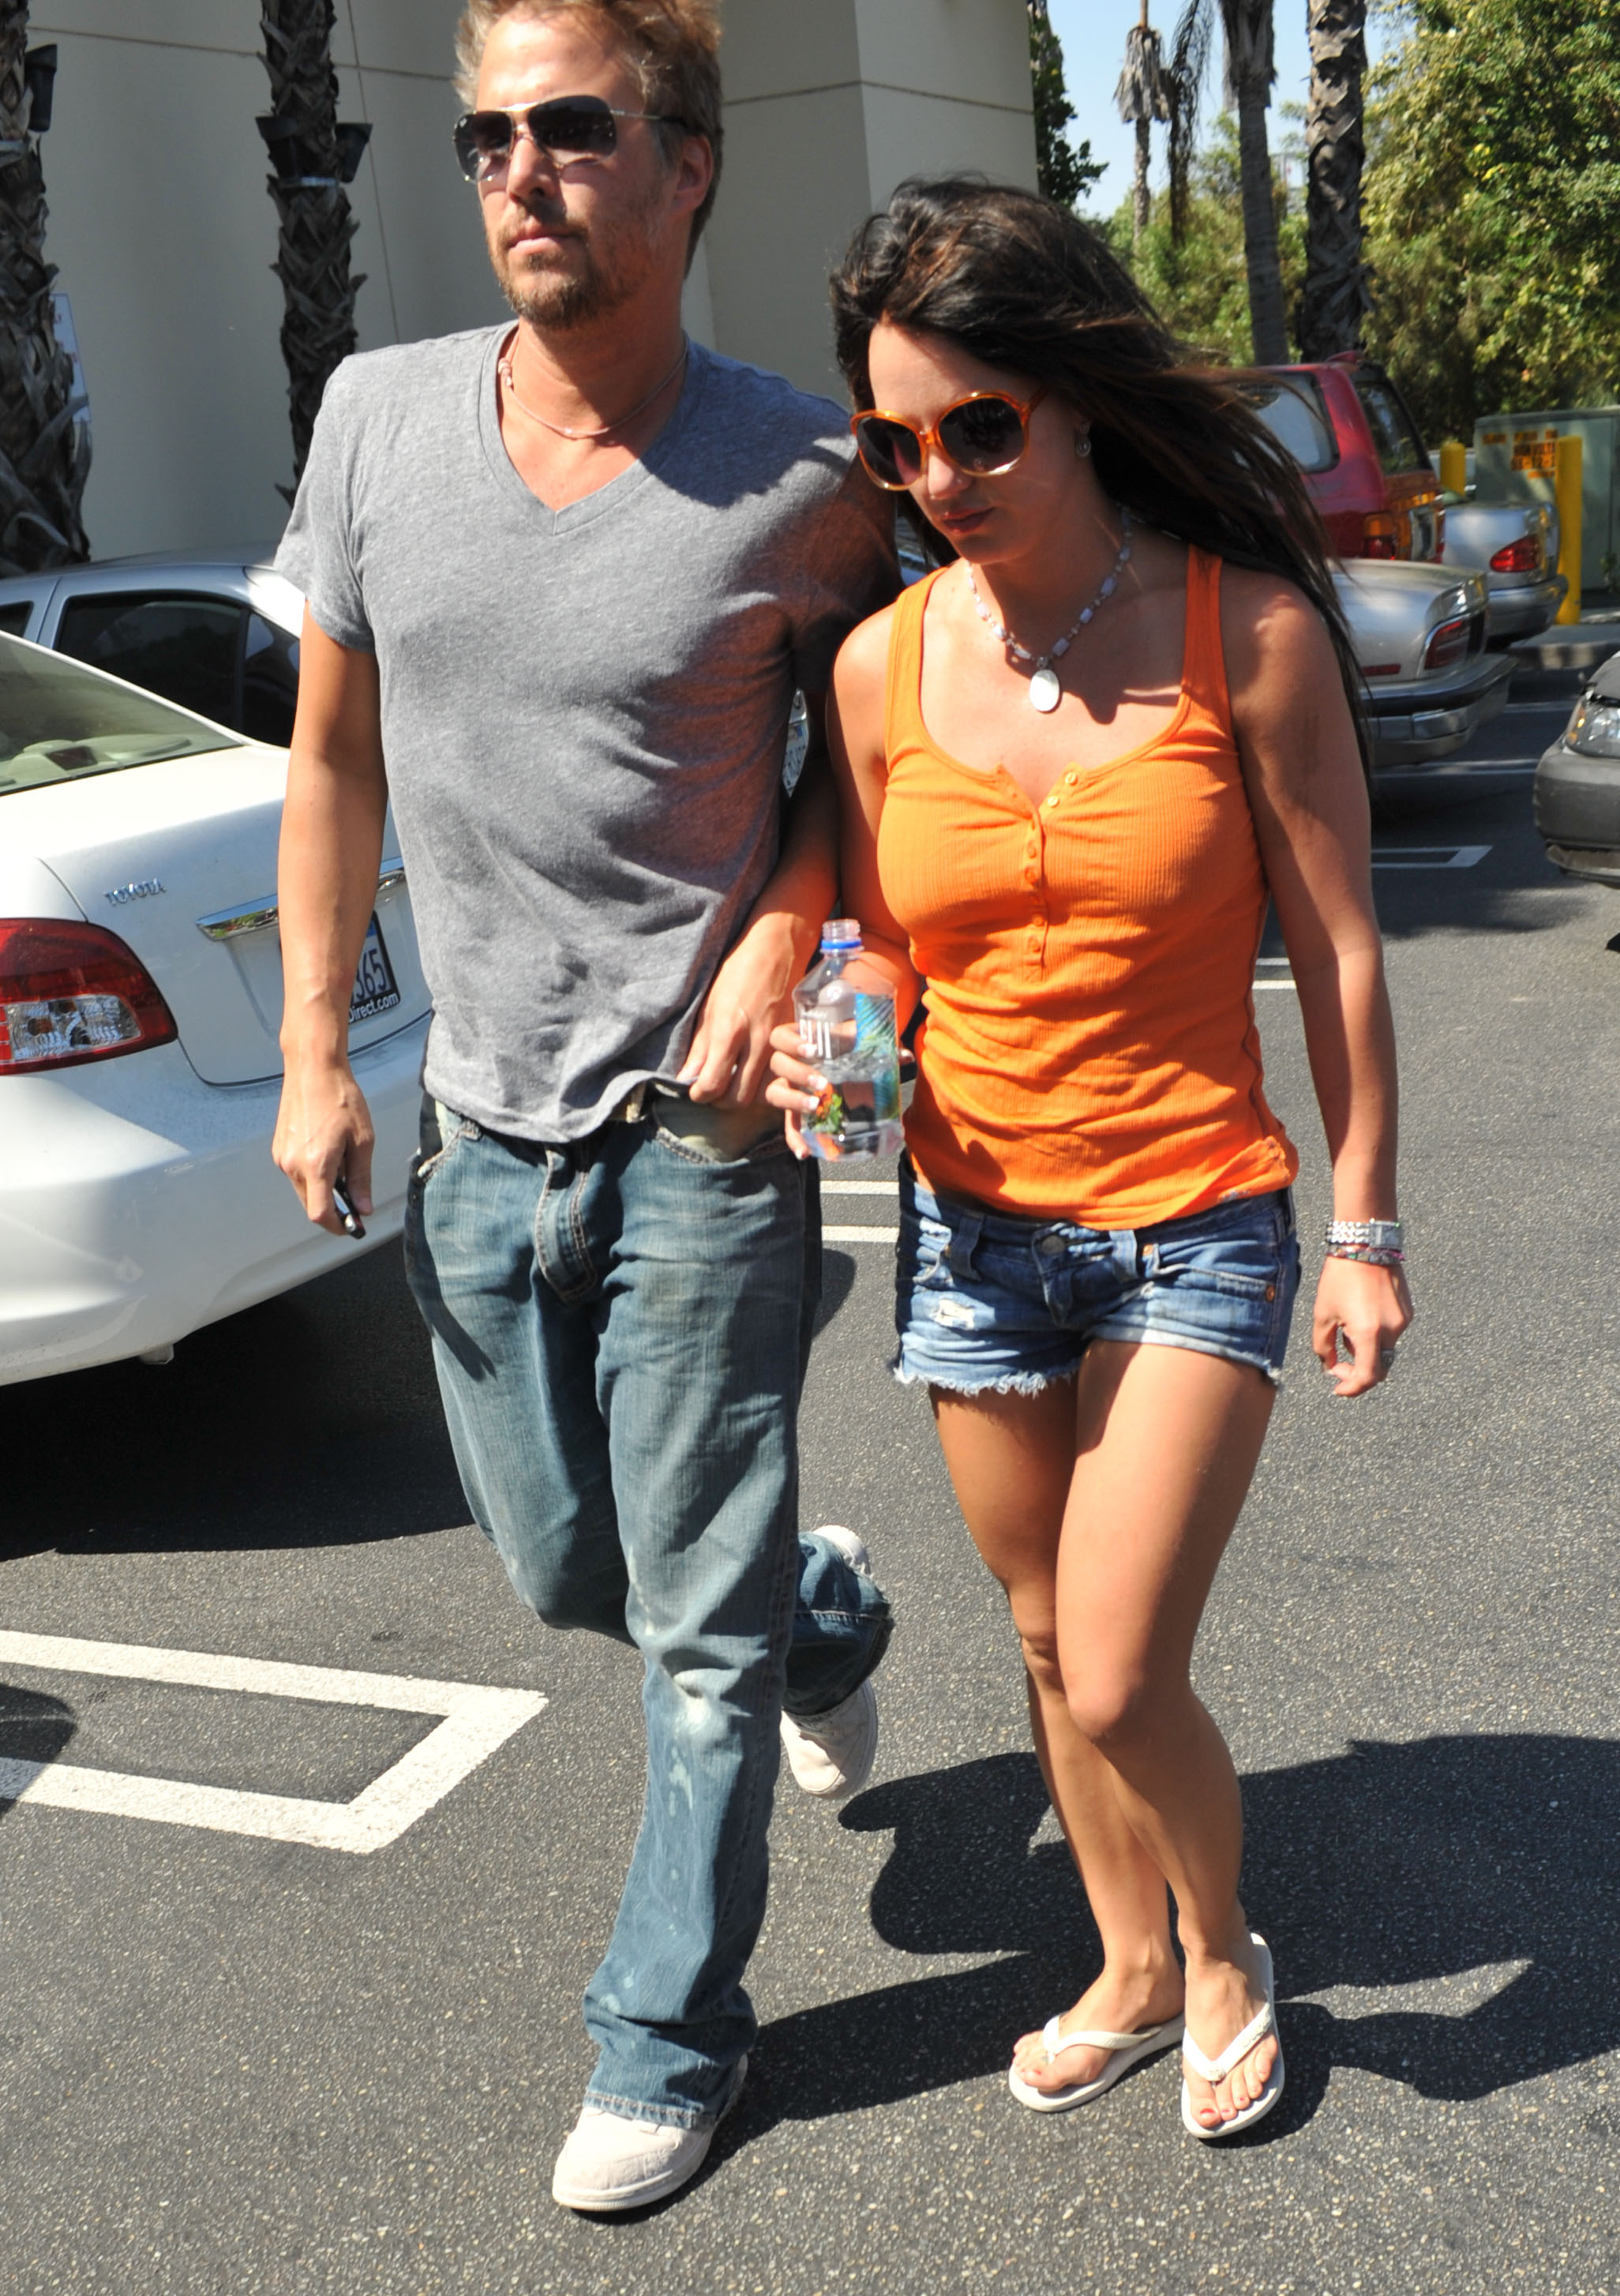 55606_celeb-city.org-The_Elder-Britney_Spears_2009-06-28_-_went_to_the_Bed_Bath_and_Beyond_0211_122_399lo.jpg